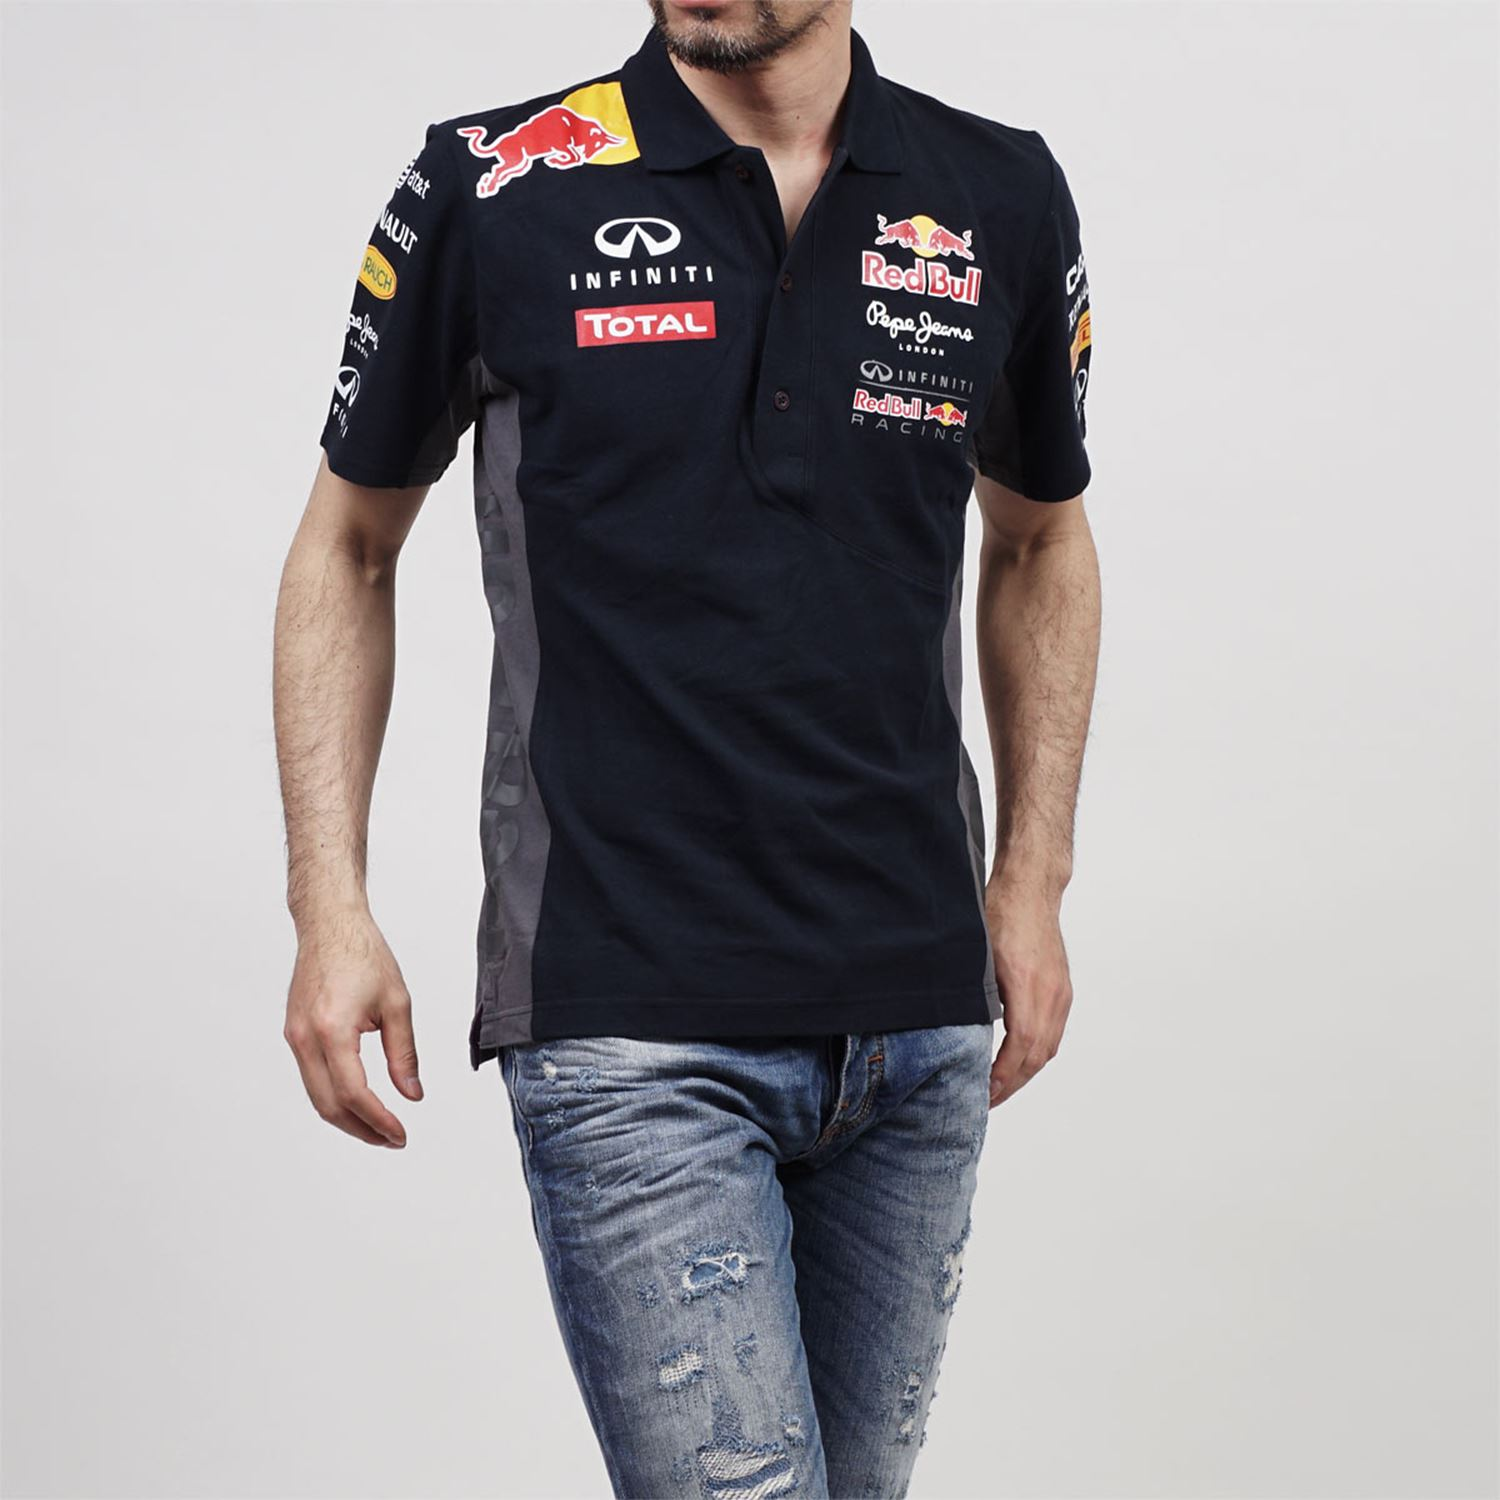 red bull racing f1 polo shirt men 39 s pepe jeans 2013 2015 navy sizes s m l xl xxl ebay. Black Bedroom Furniture Sets. Home Design Ideas